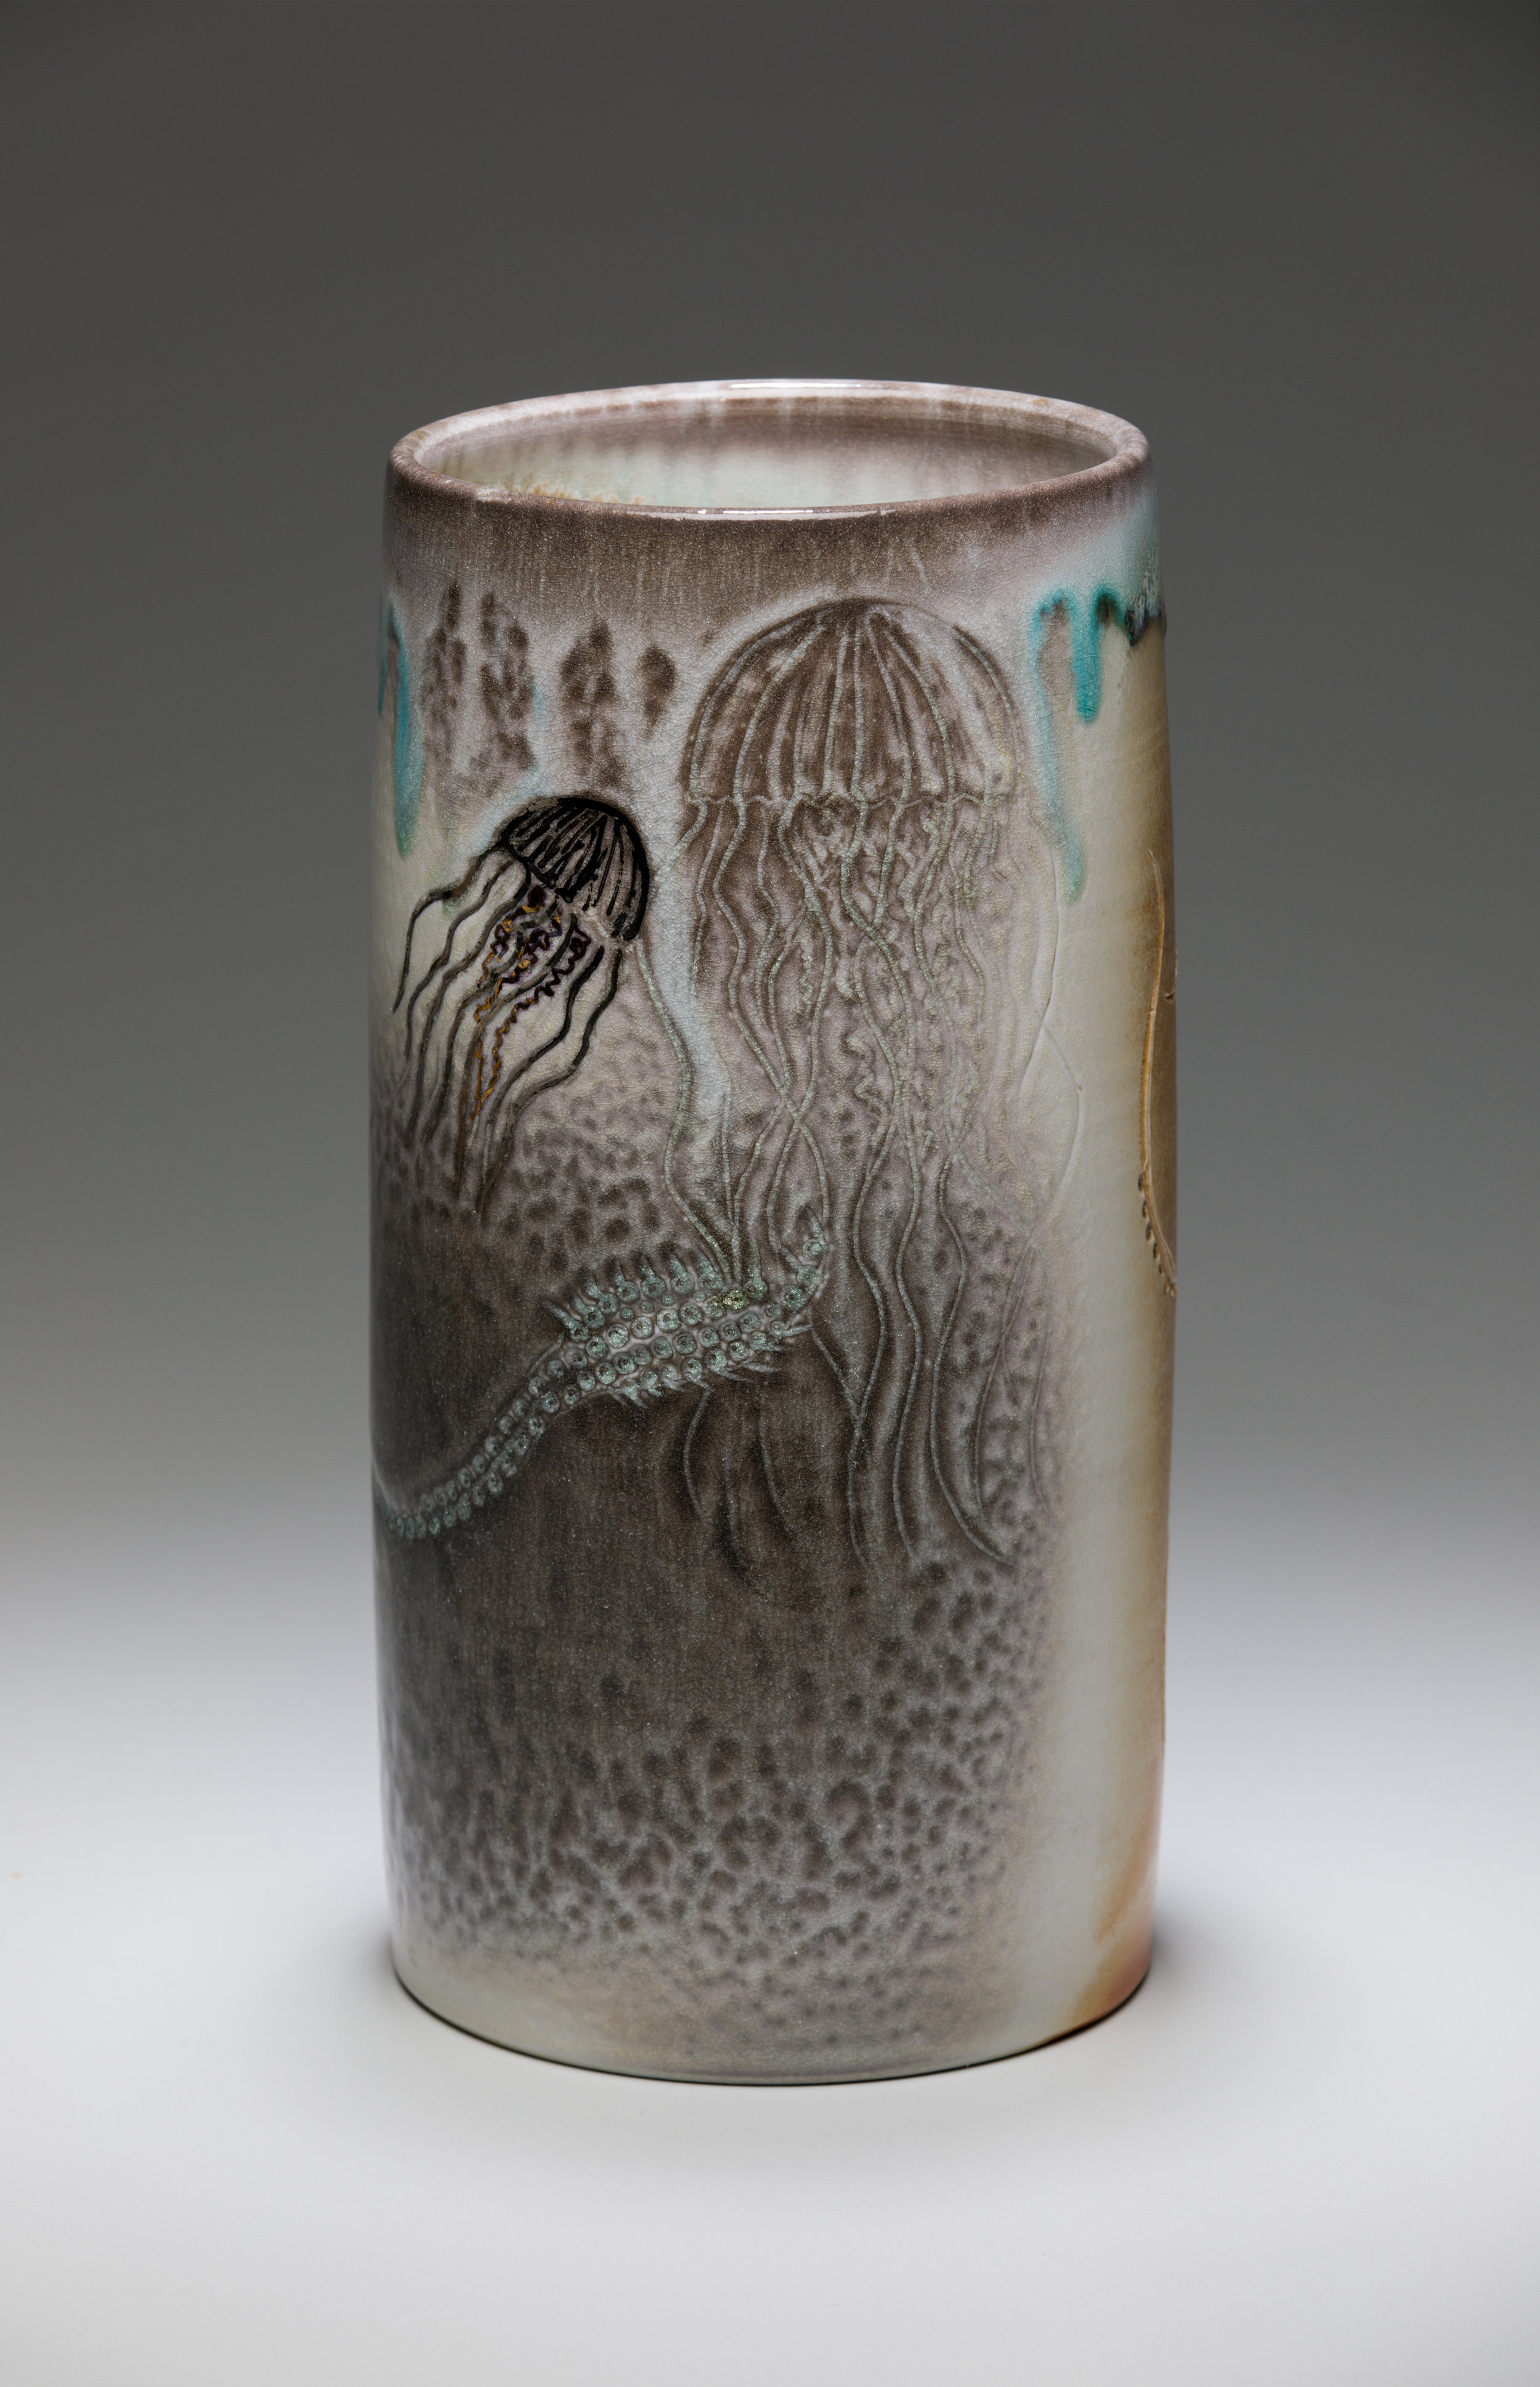 vase- squid, jelly-fish  porcelain, wood-fired  sold